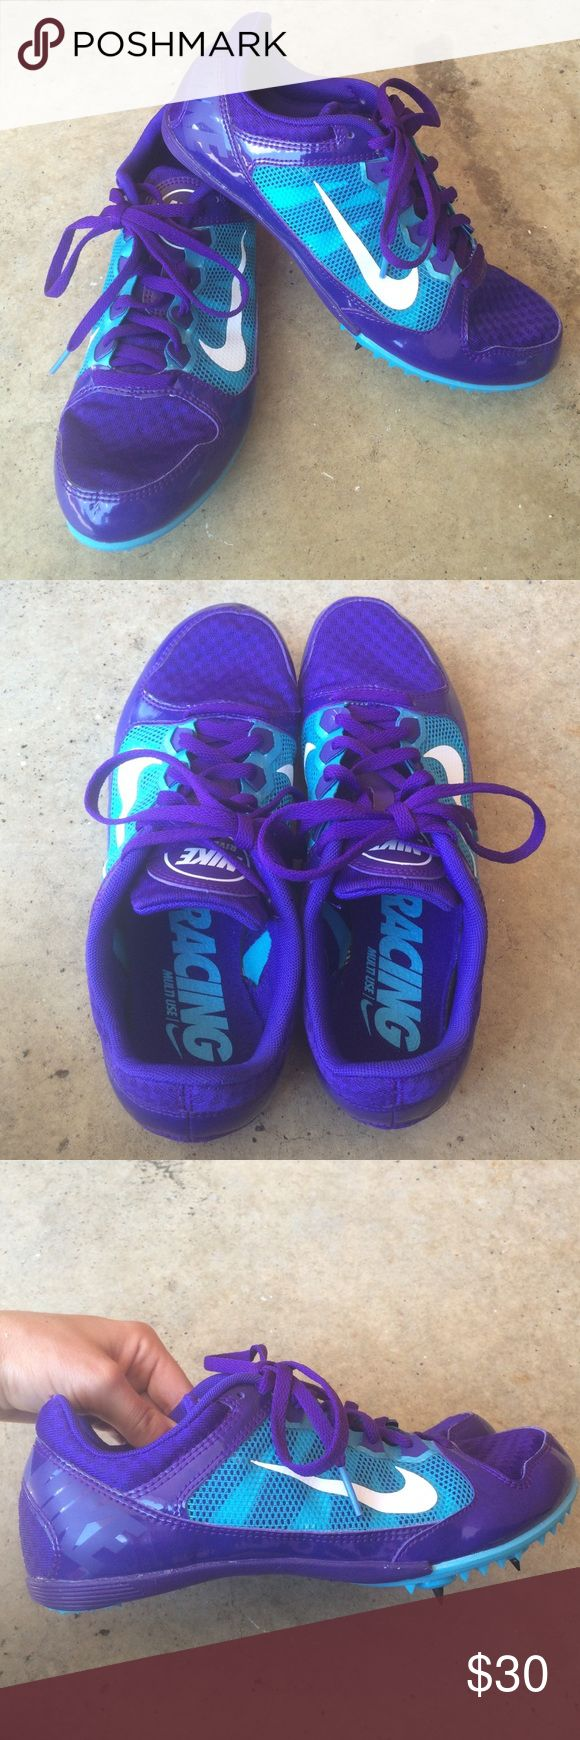 BRAND NEW! Nike spikes Just in time for back to school! Perfect for those girls and daughters who run track. Brand new never worn Nike track and field spike cleats. Originally $100 women's size 9. Nike Shoes Athletic Shoes